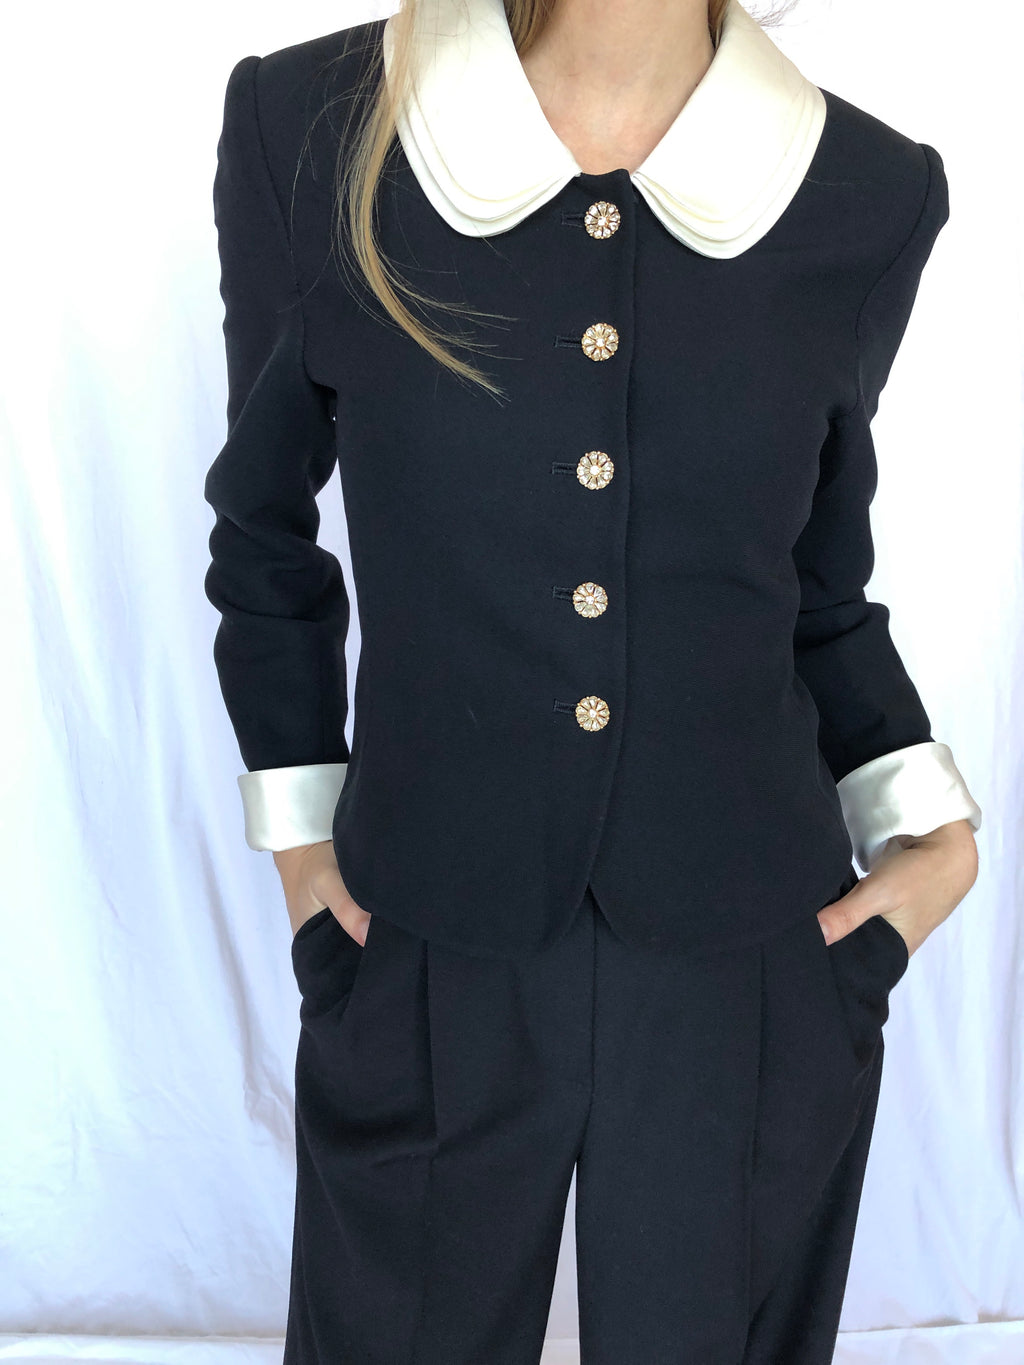 Albert Nipon Petite Vintage Black White Cuff Short Jacket 4P S